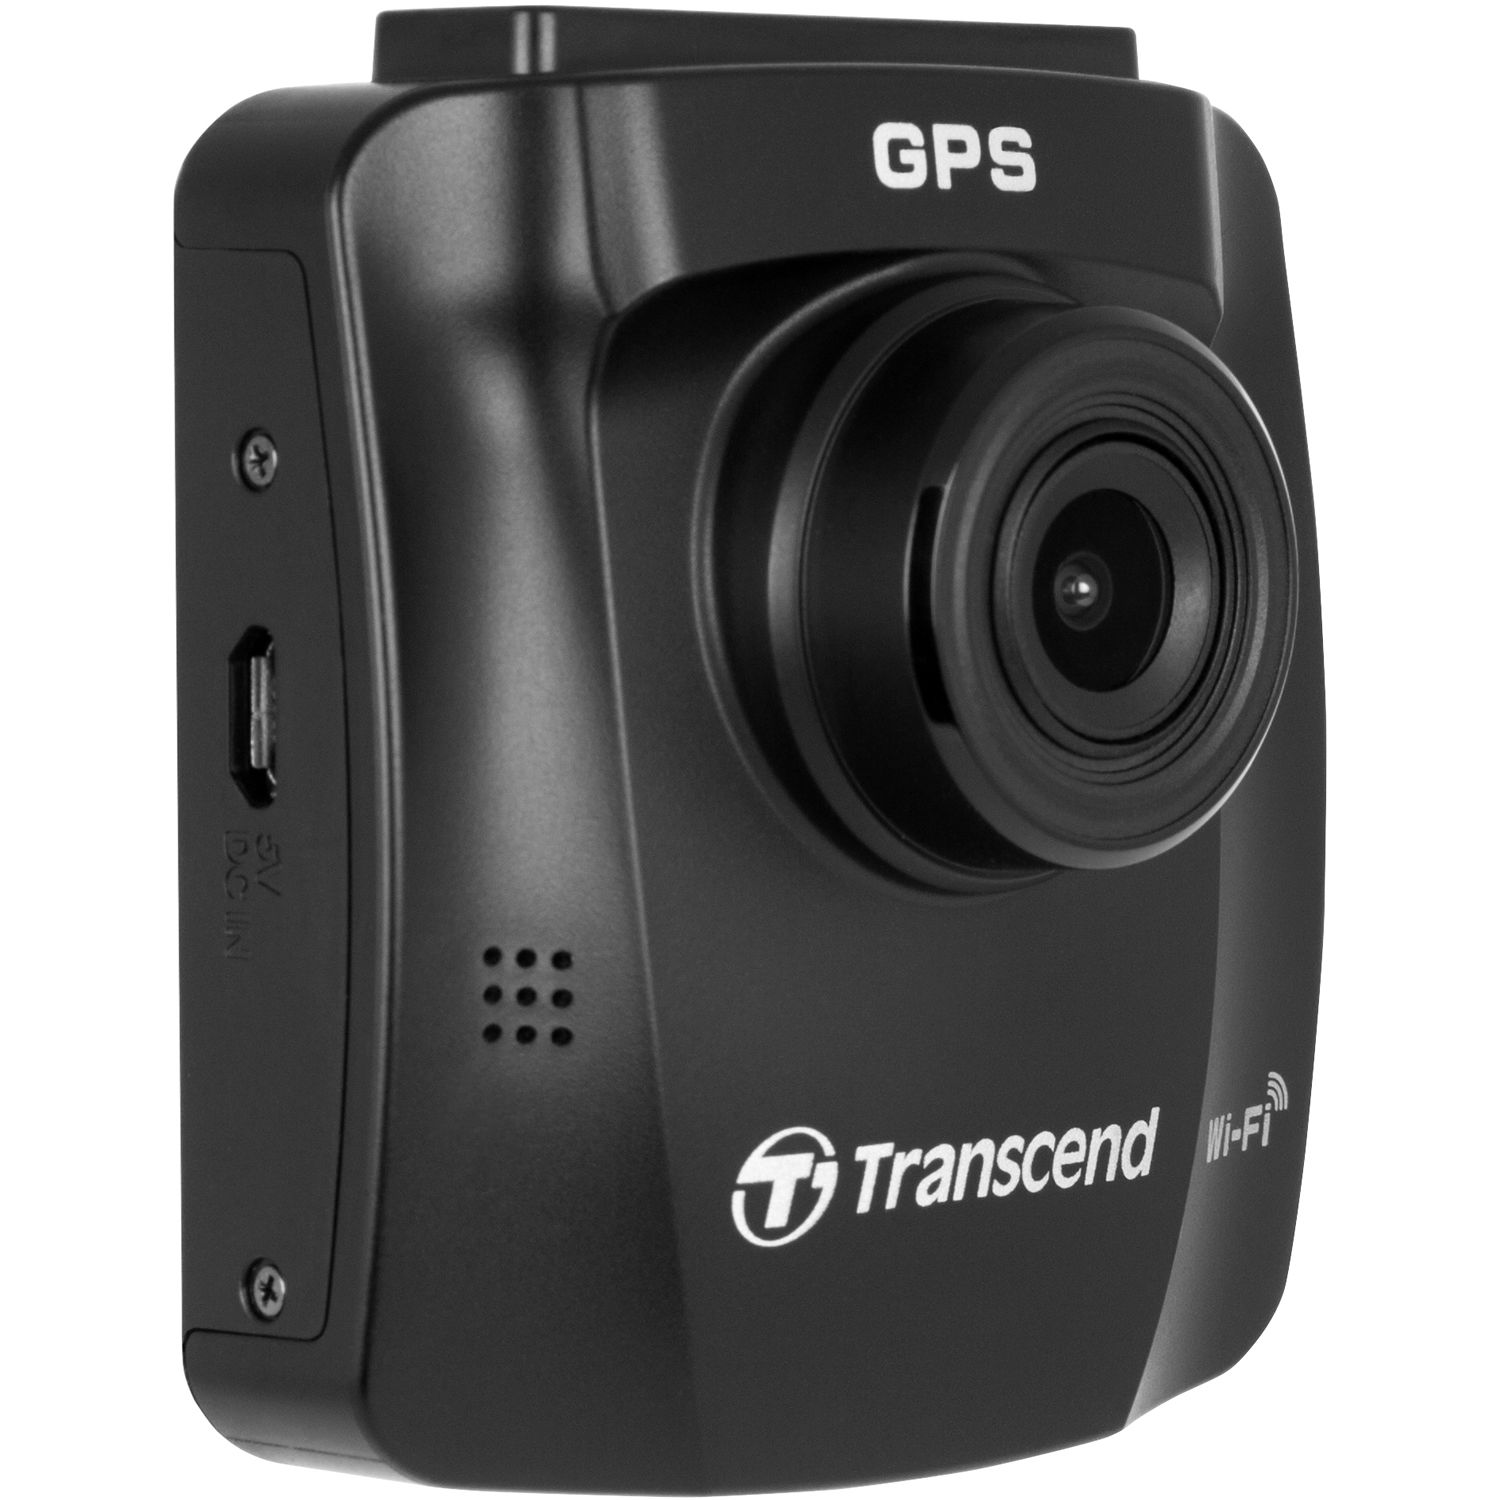 transcend drivepro 230 1080p dash camera ts16gdp230m b h photo